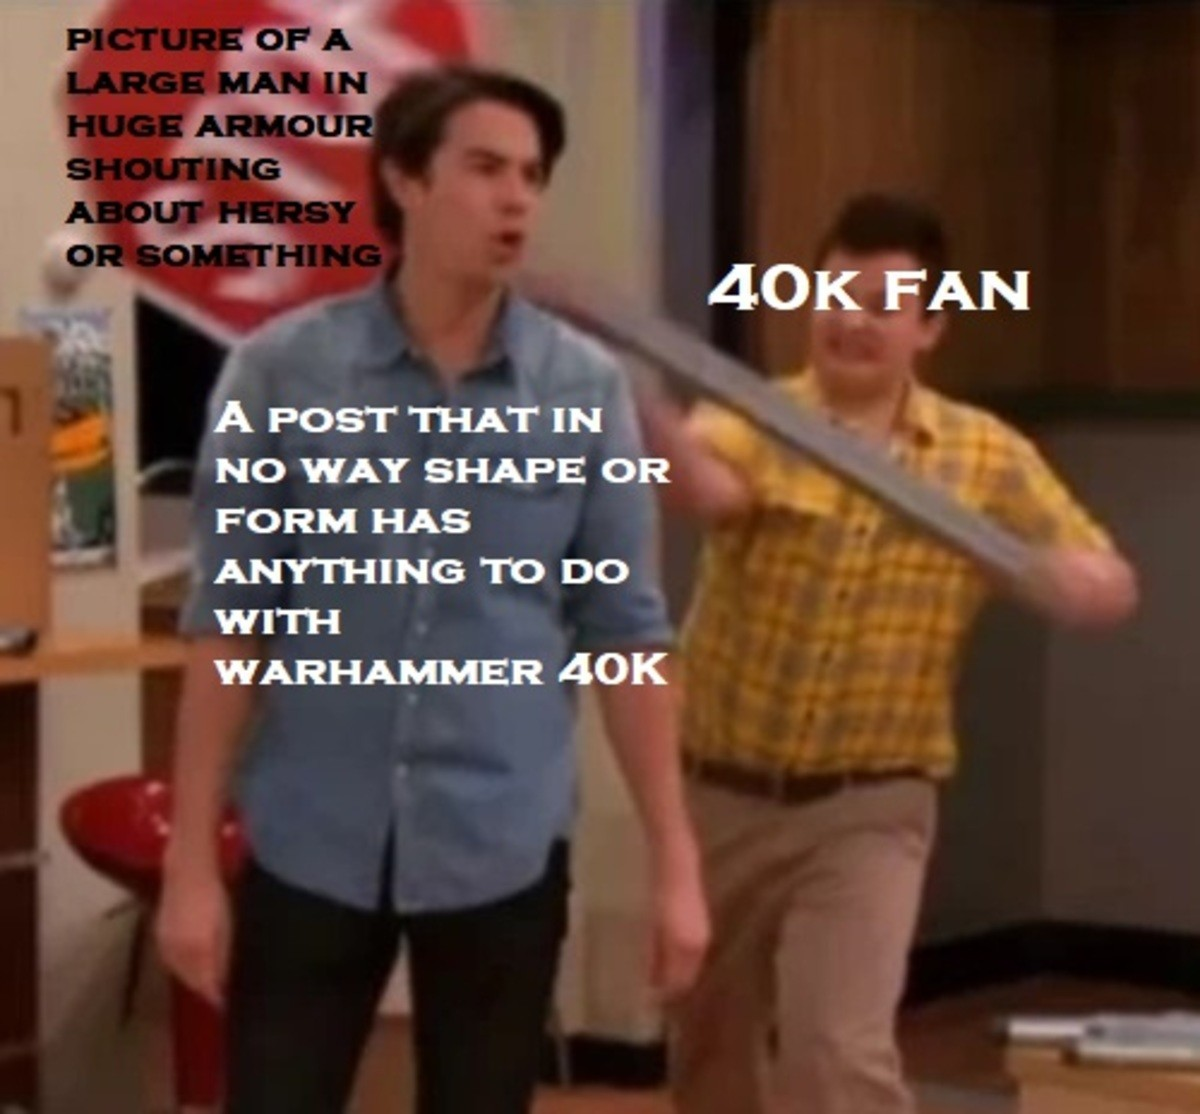 Y u do Dis?. Sometimes I forget Warhammer 40K is a game and not some strange religion invented by people who like big Armour... and now you know how i feel about jojo